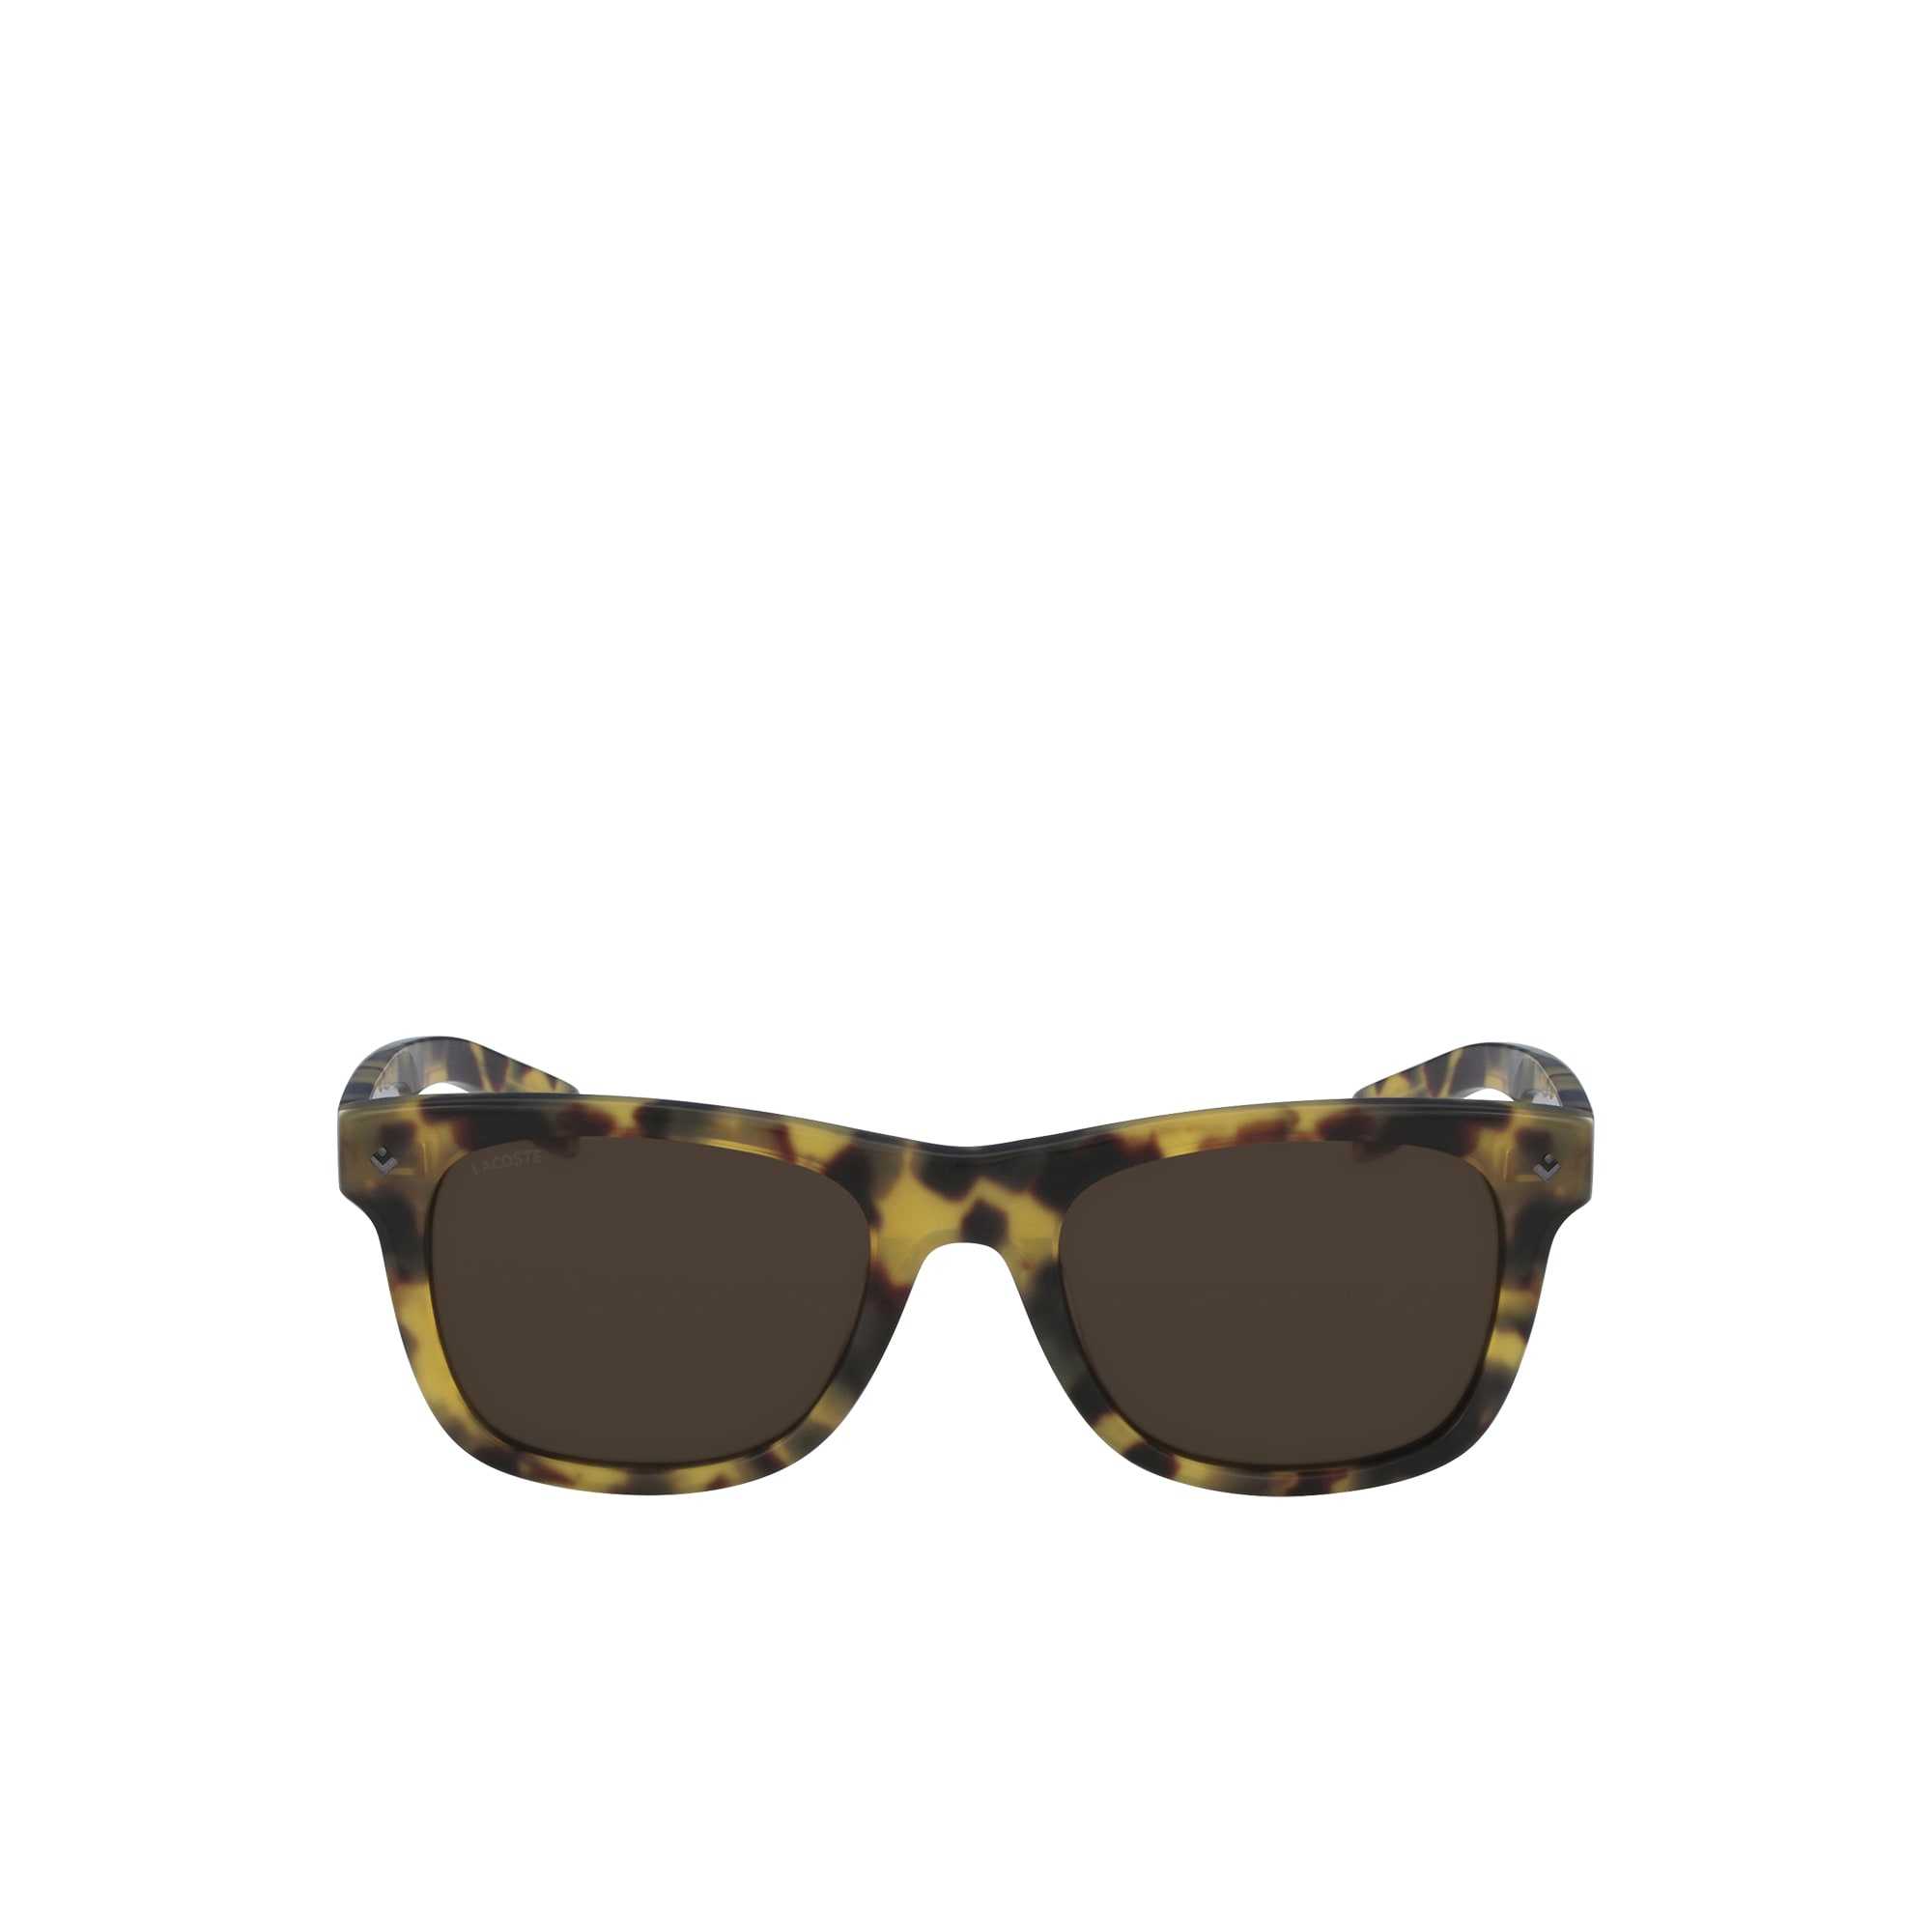 Unisex Petit Piqué Sunglasses 85th anniversary with Acetate Frames